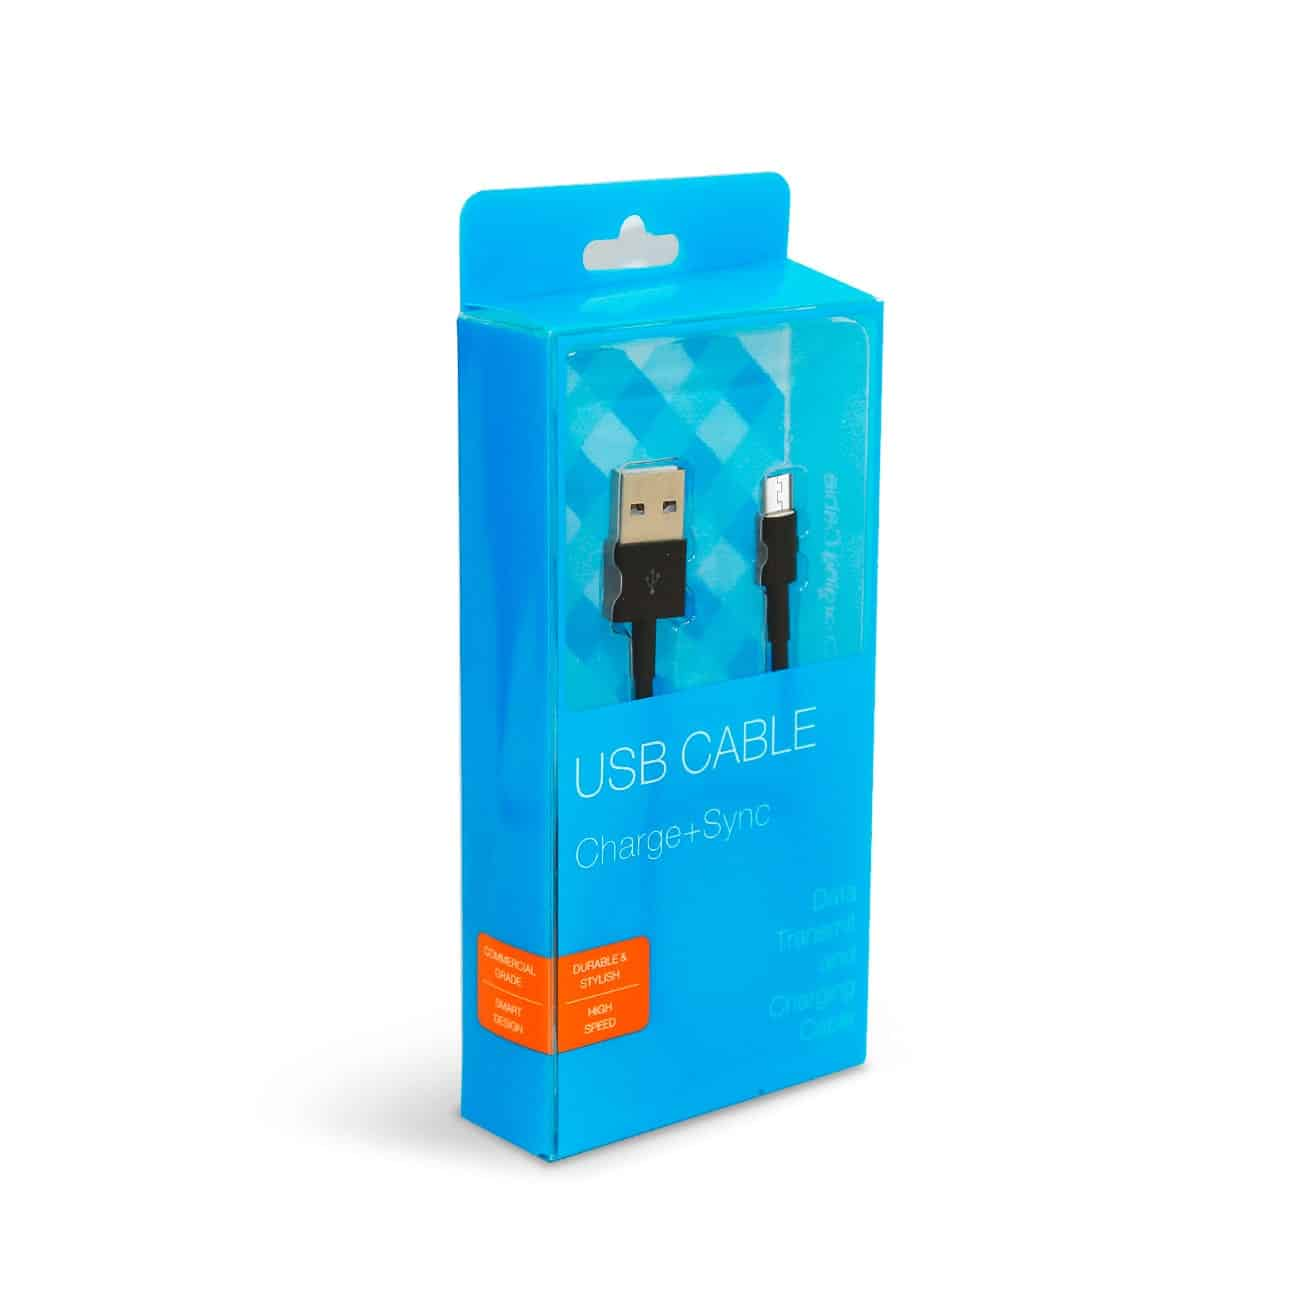 3.3FT PVC Material Micro USB 2.0 Data Cable In Black And Luxury Packaging